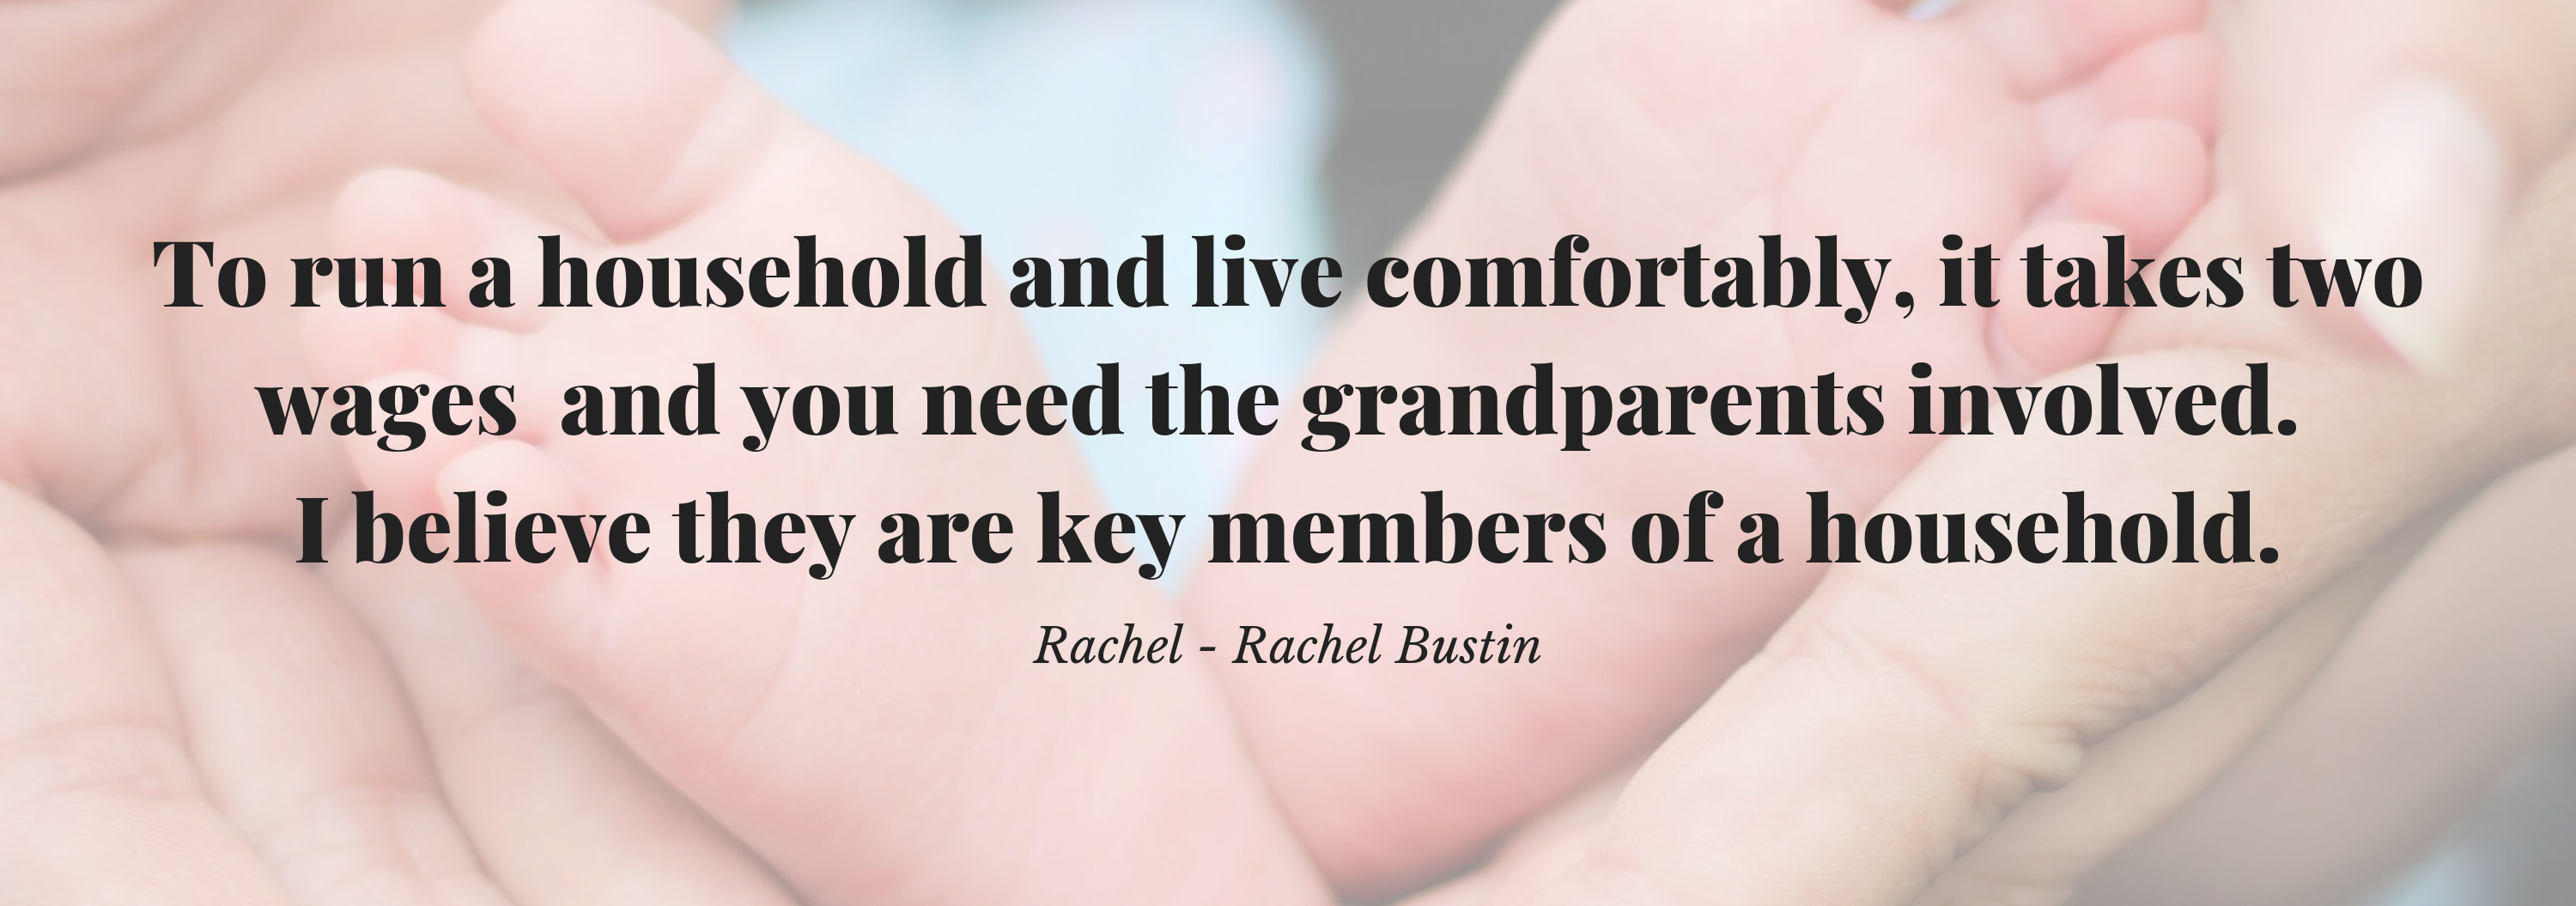 Quote from Rachel Bustin